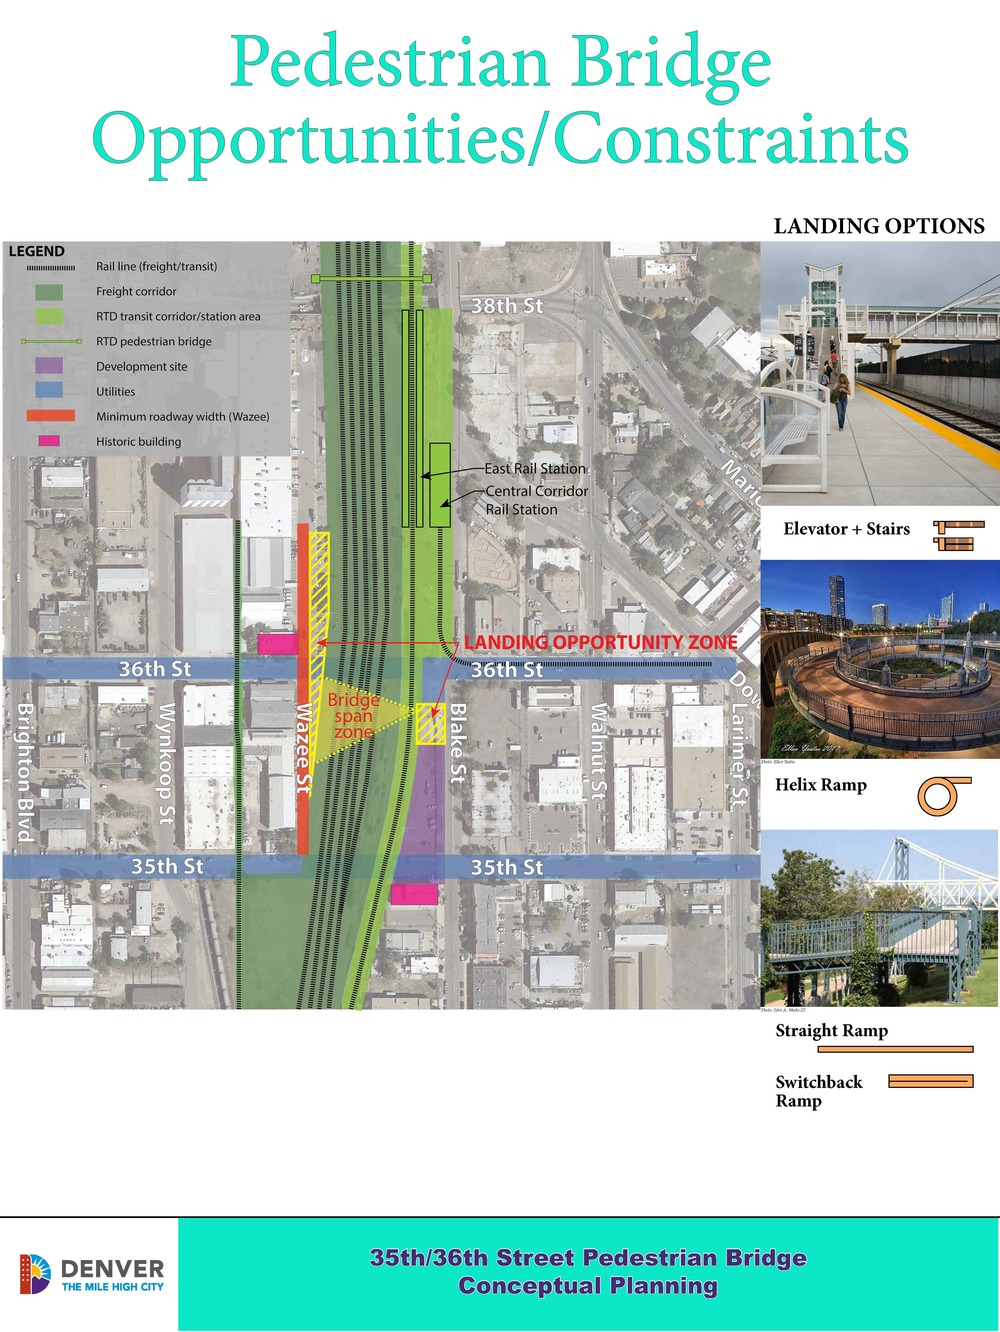 Pedestrian Bridge Opportunities/Constraints